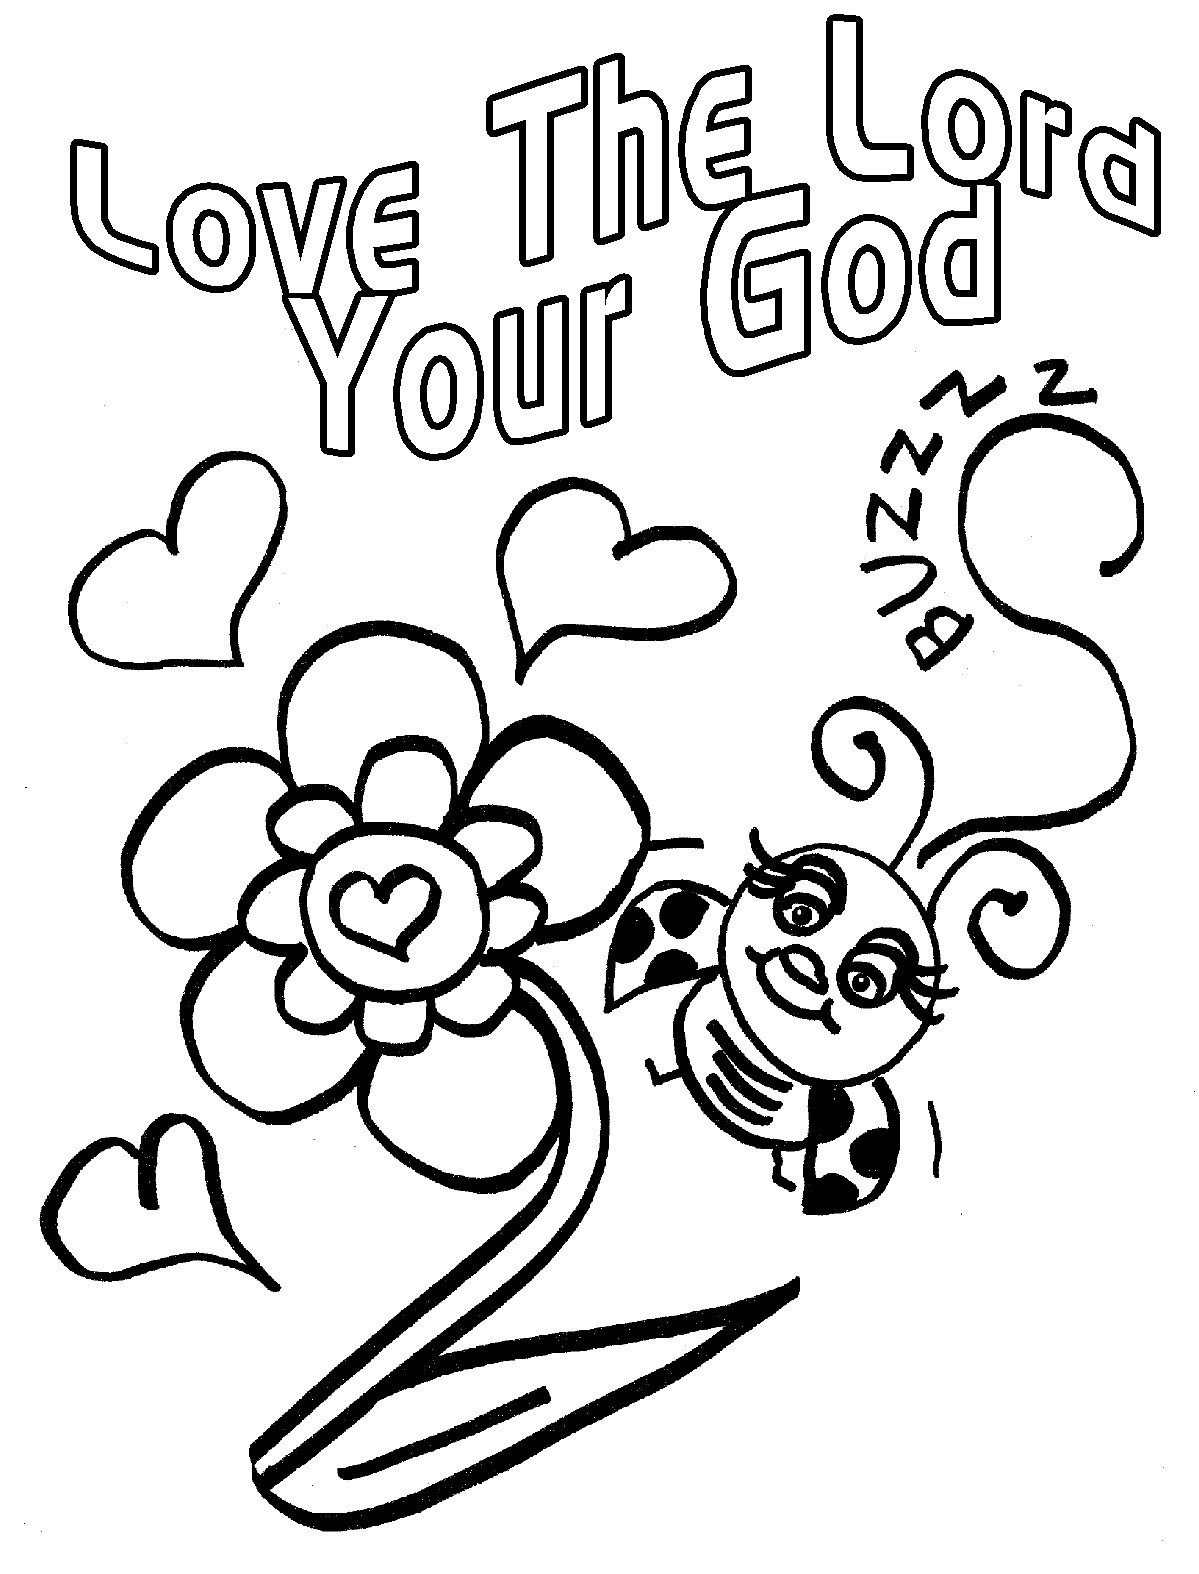 Jesus Loves Me Coloring Page Jesus Loves Me Coloring Page Fabulous Inside Bitslice